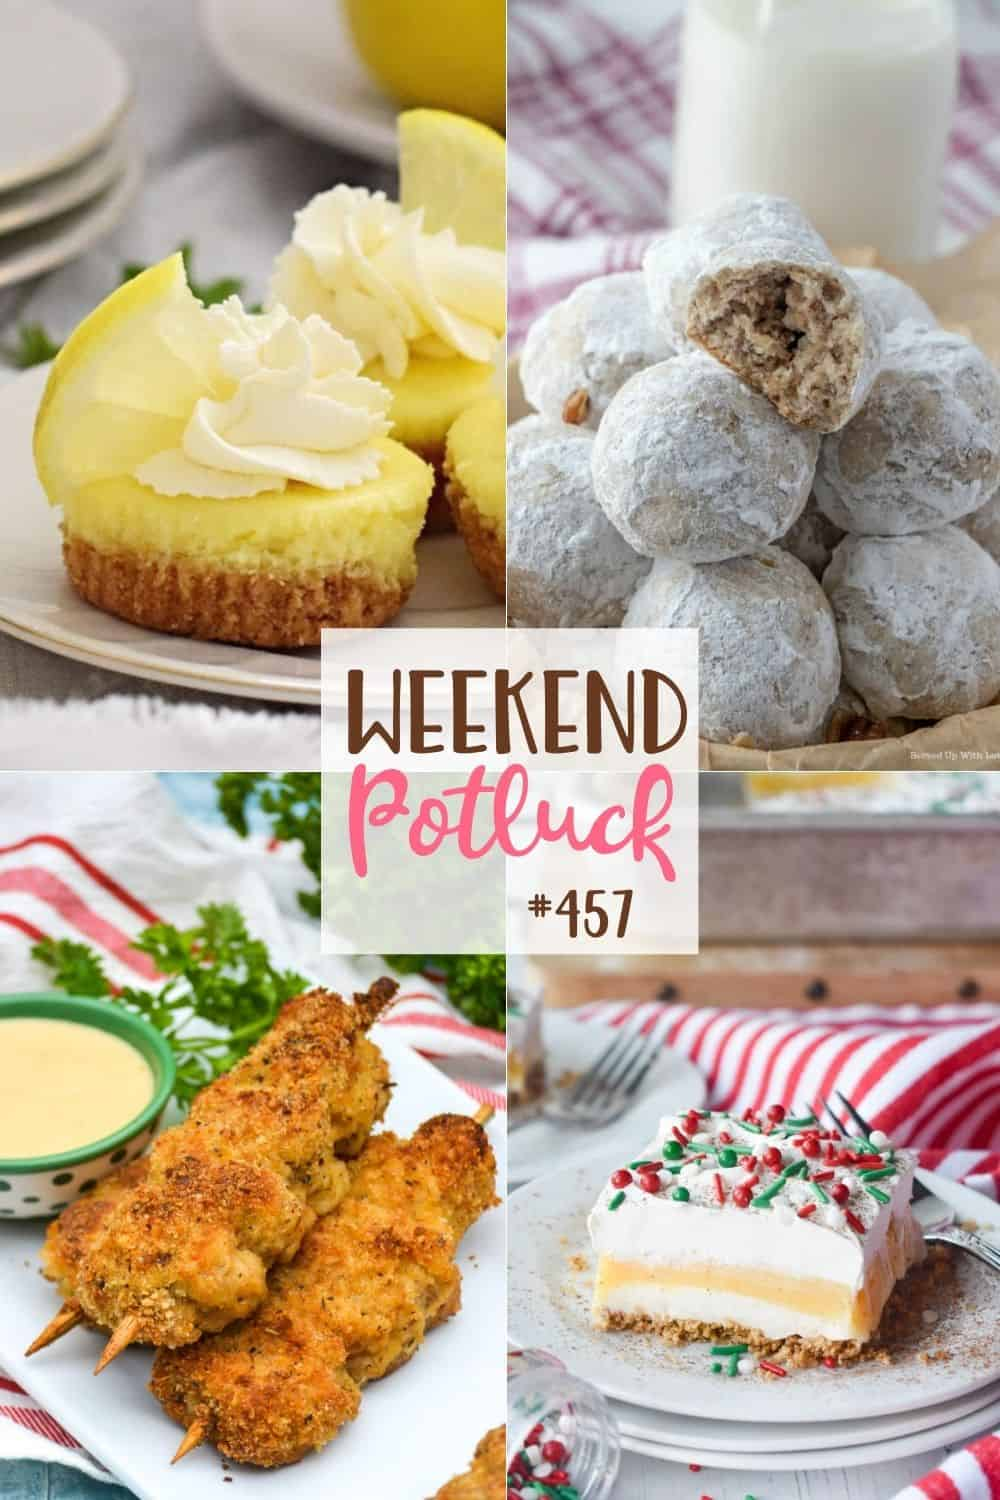 Weekend Potluck recipes include: Mini Baked Lemon Cheesecakes, Nonna's City Chicken, Eggnog Dessert and Classic Snowball Cookies.